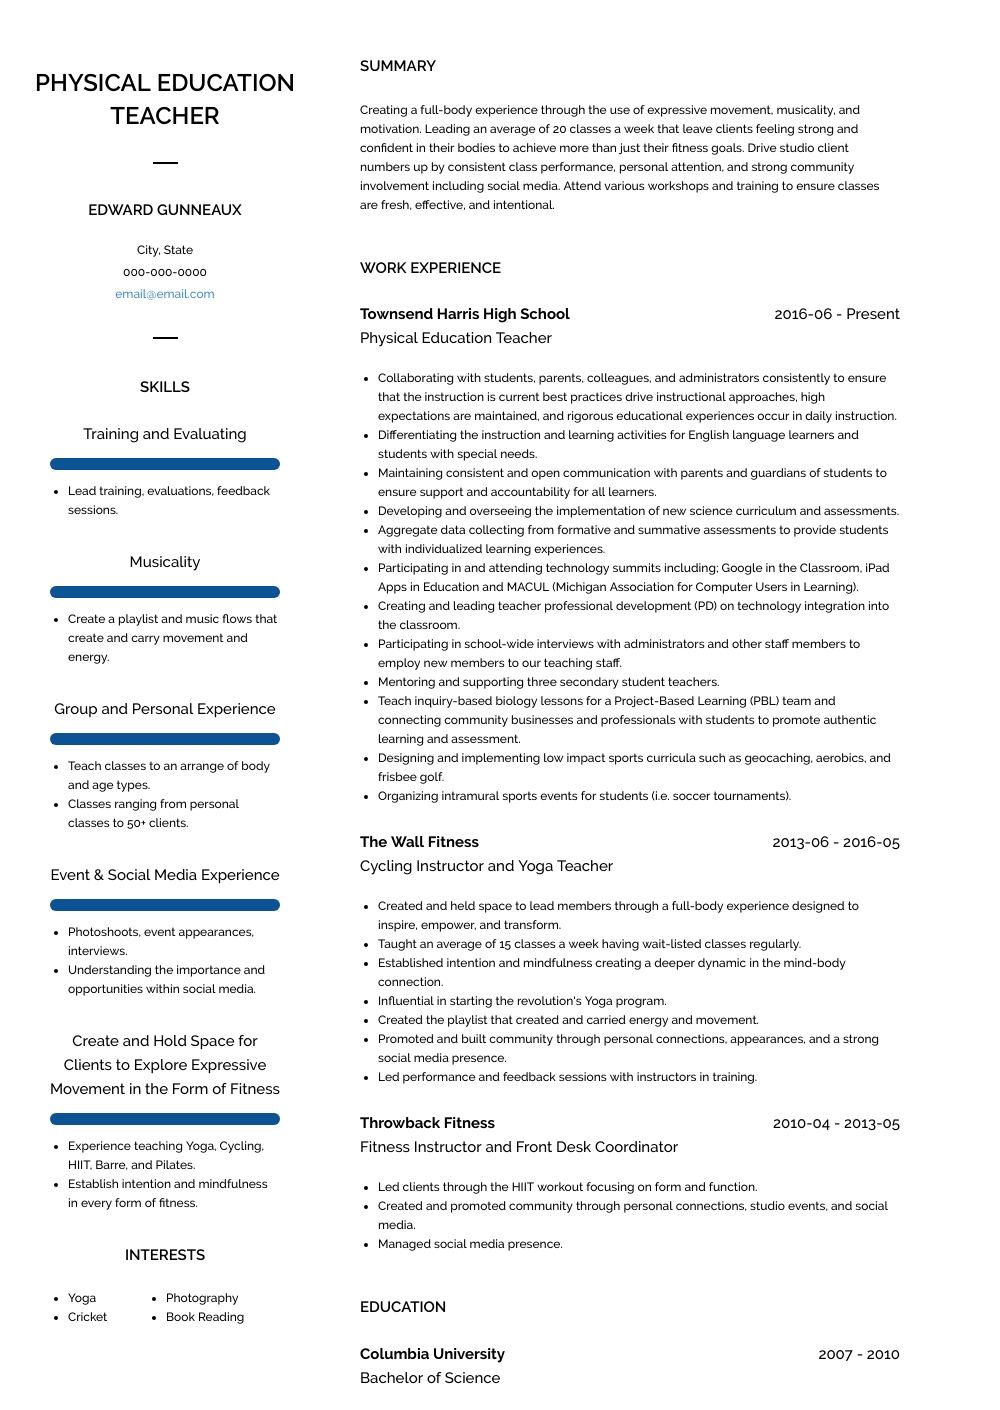 Physical Education Teacher Resume Sample and Template